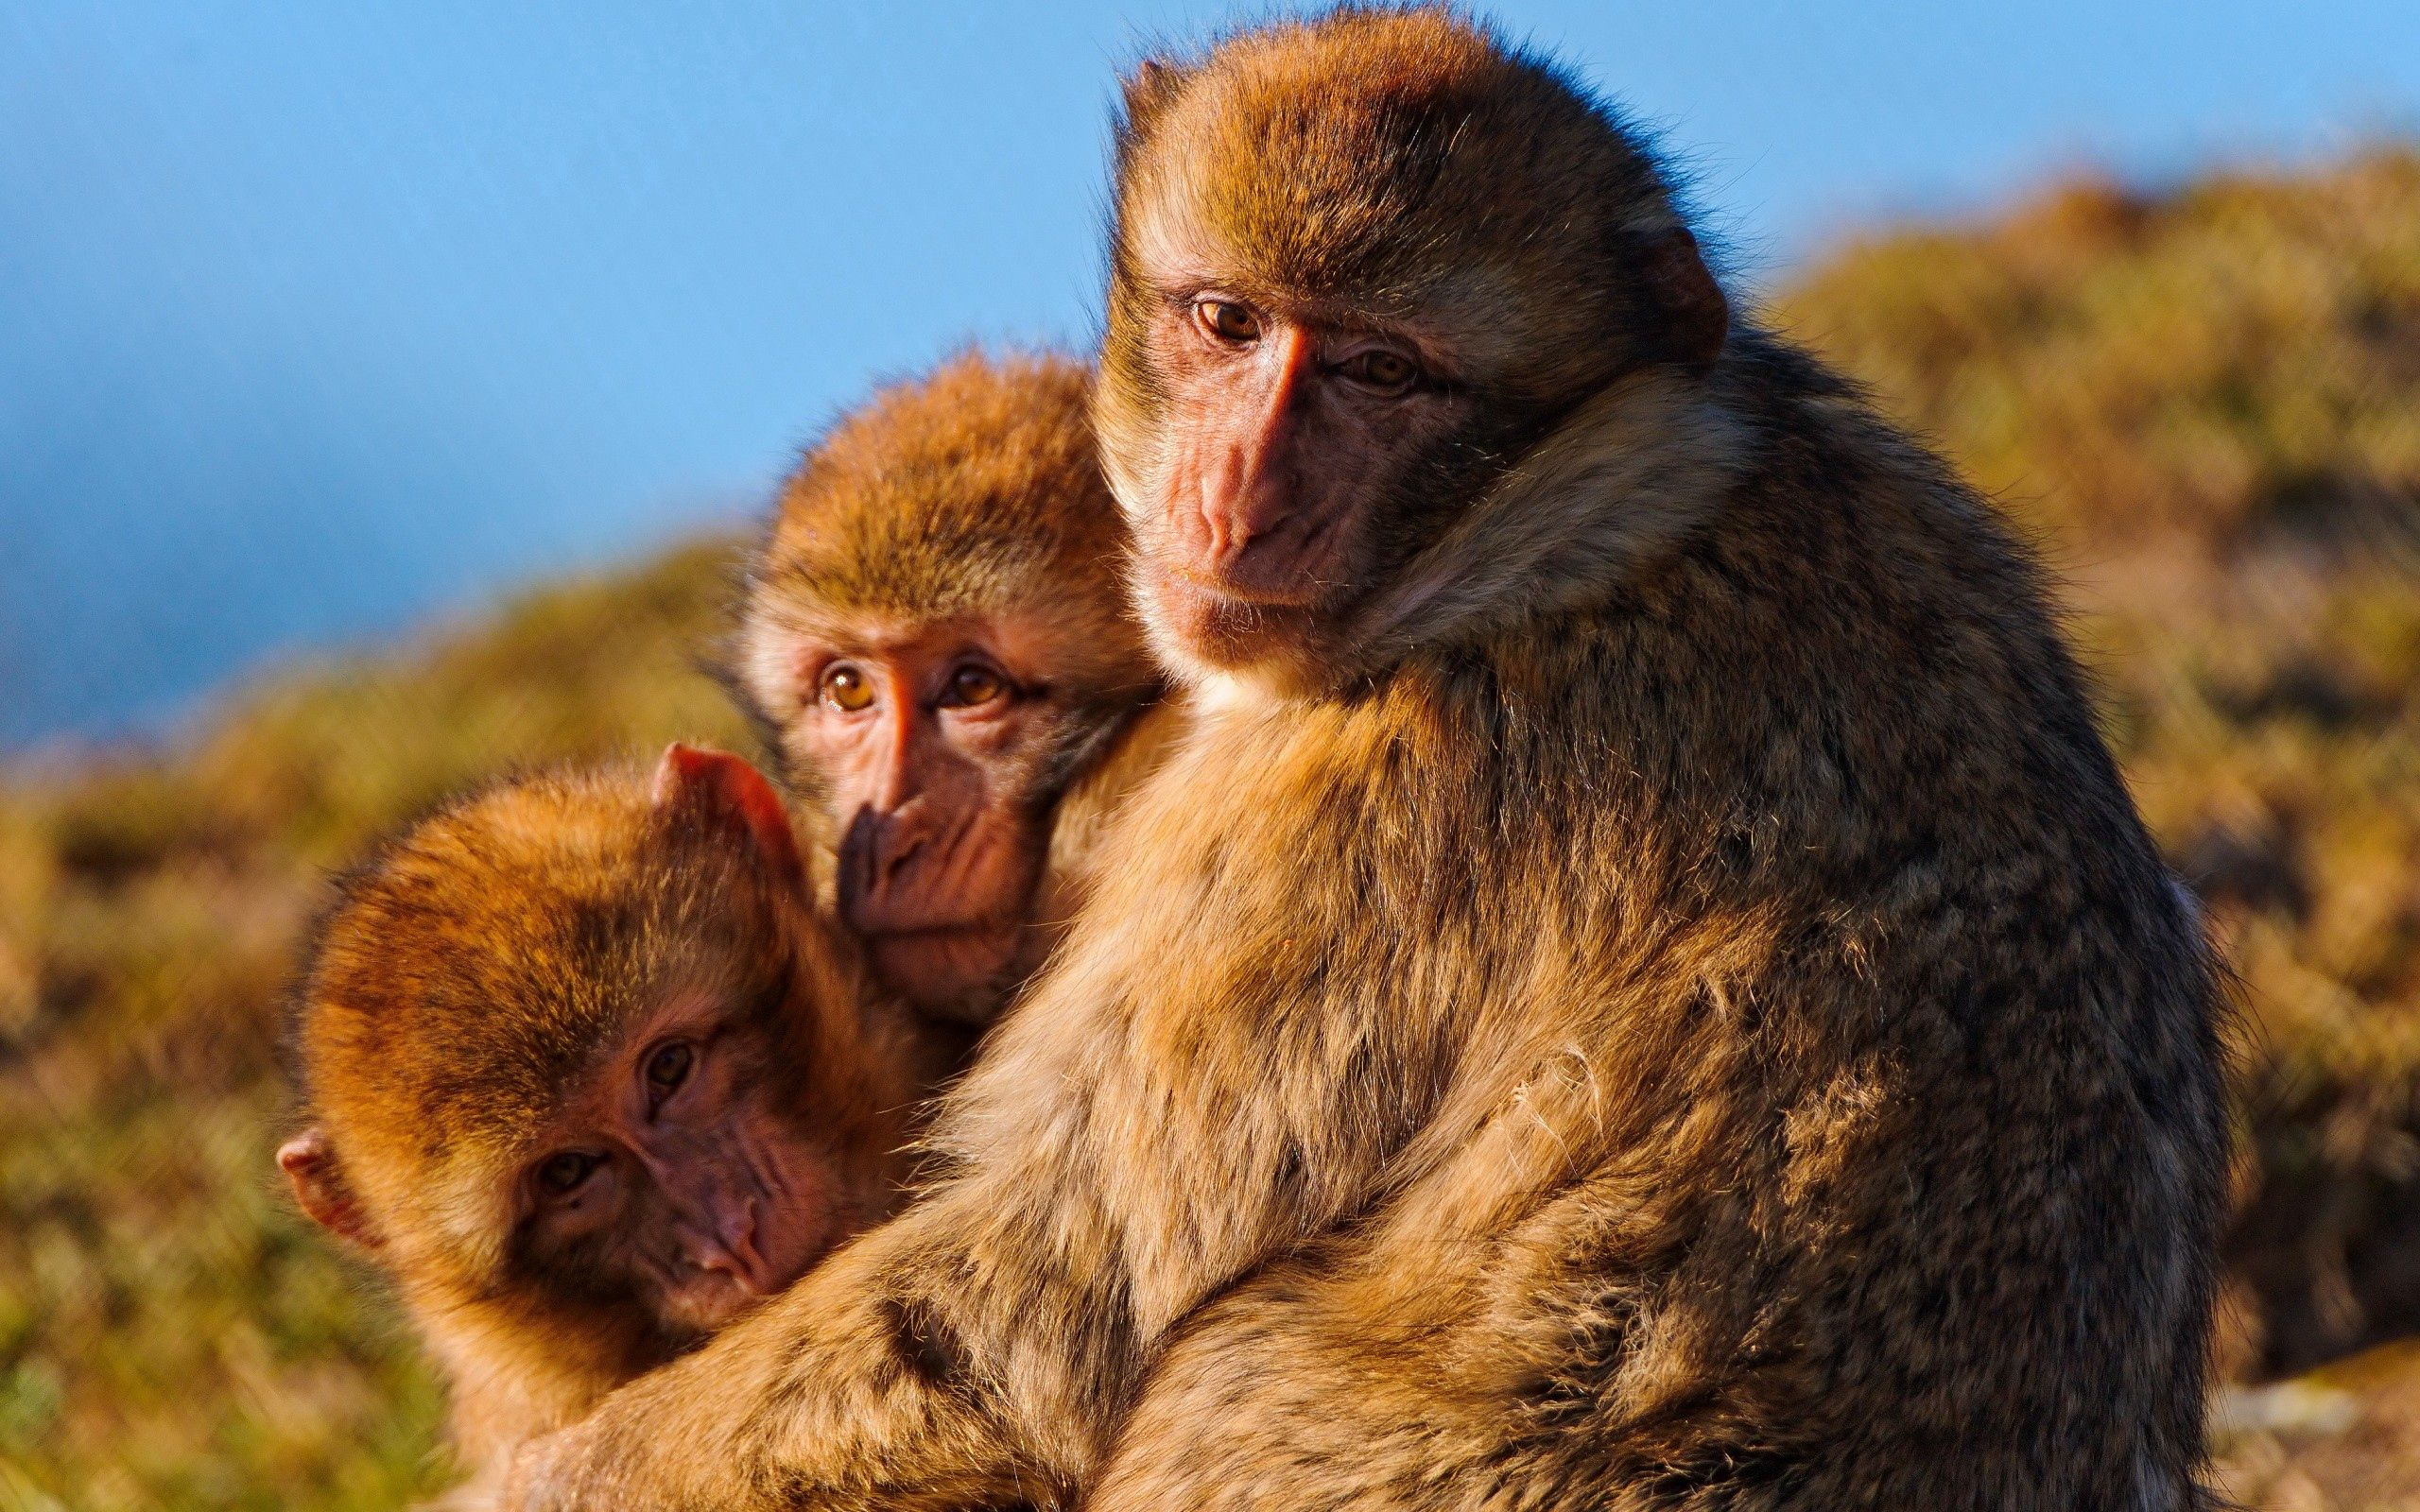 57248 Screensavers and Wallpapers Monkeys for phone. Download Animals, Monkeys, Family, Embrace, Self-Preservation, Instincts pictures for free